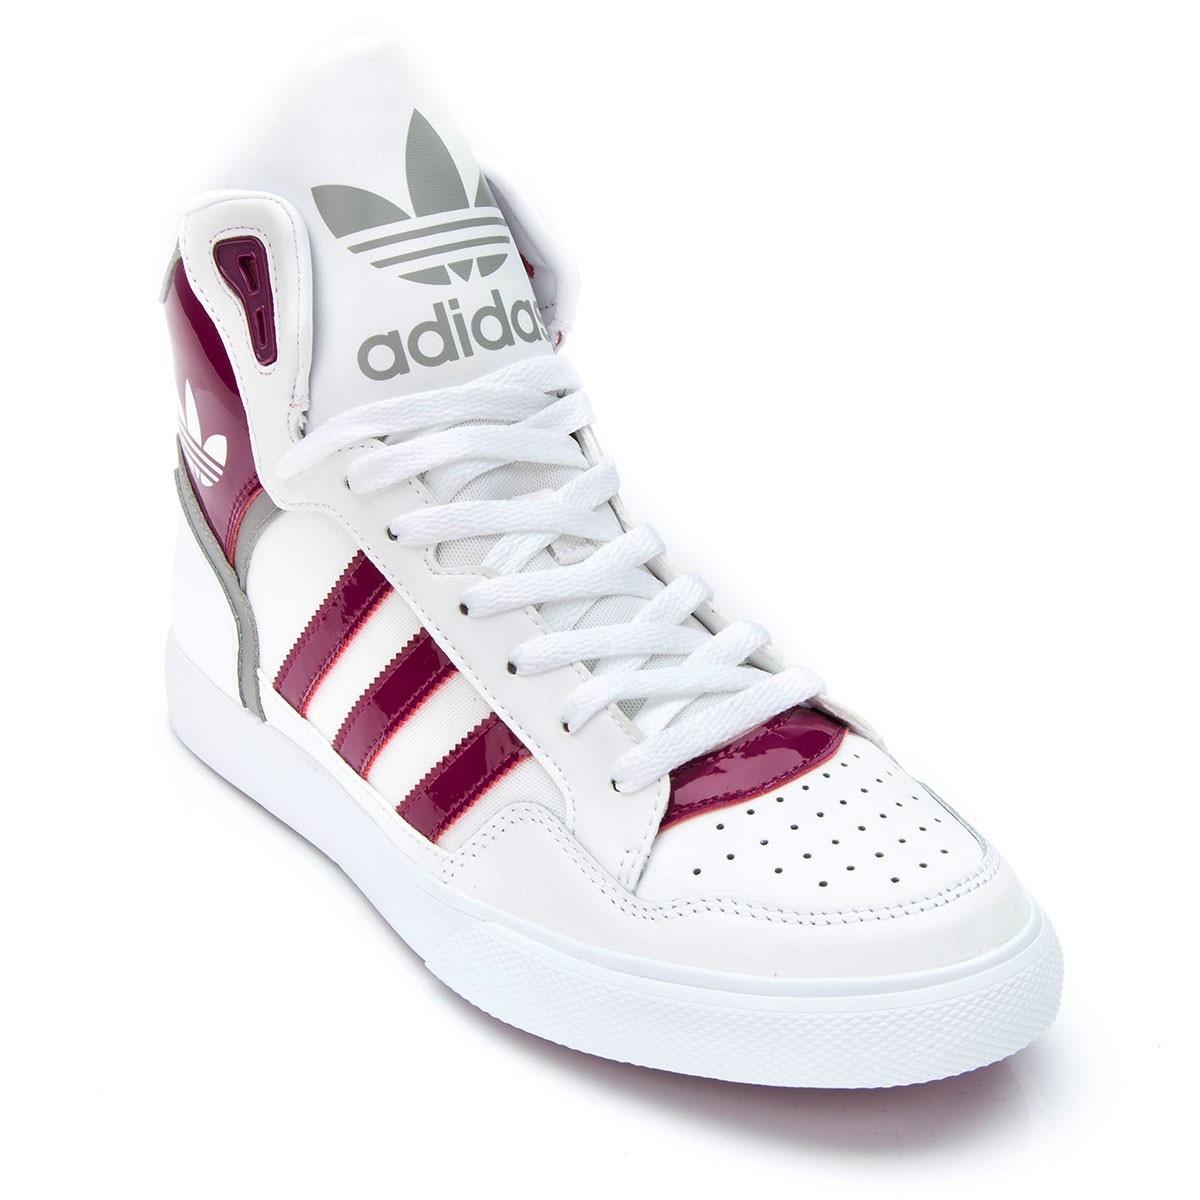 super popular 9204e 58fe5 Adidas Extaball Shoes